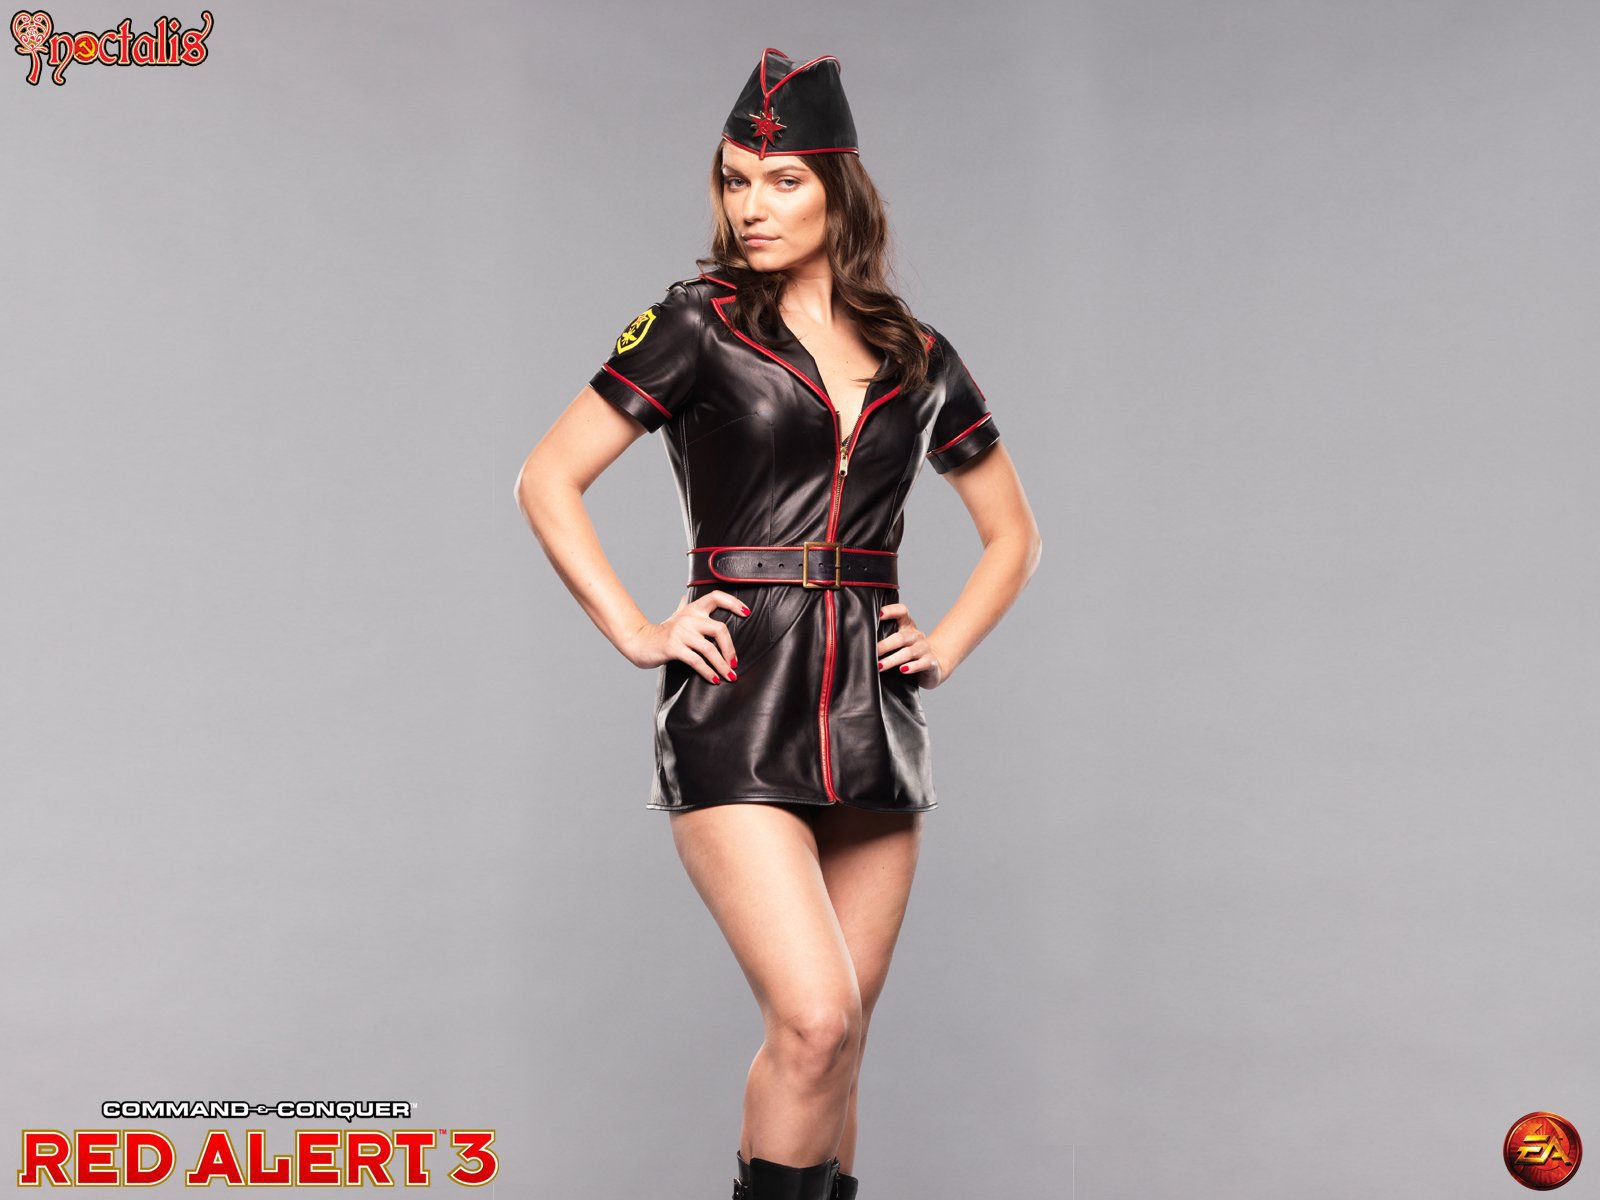 1600x1200 > Command & Conquer: Red Alert 3 Wallpapers